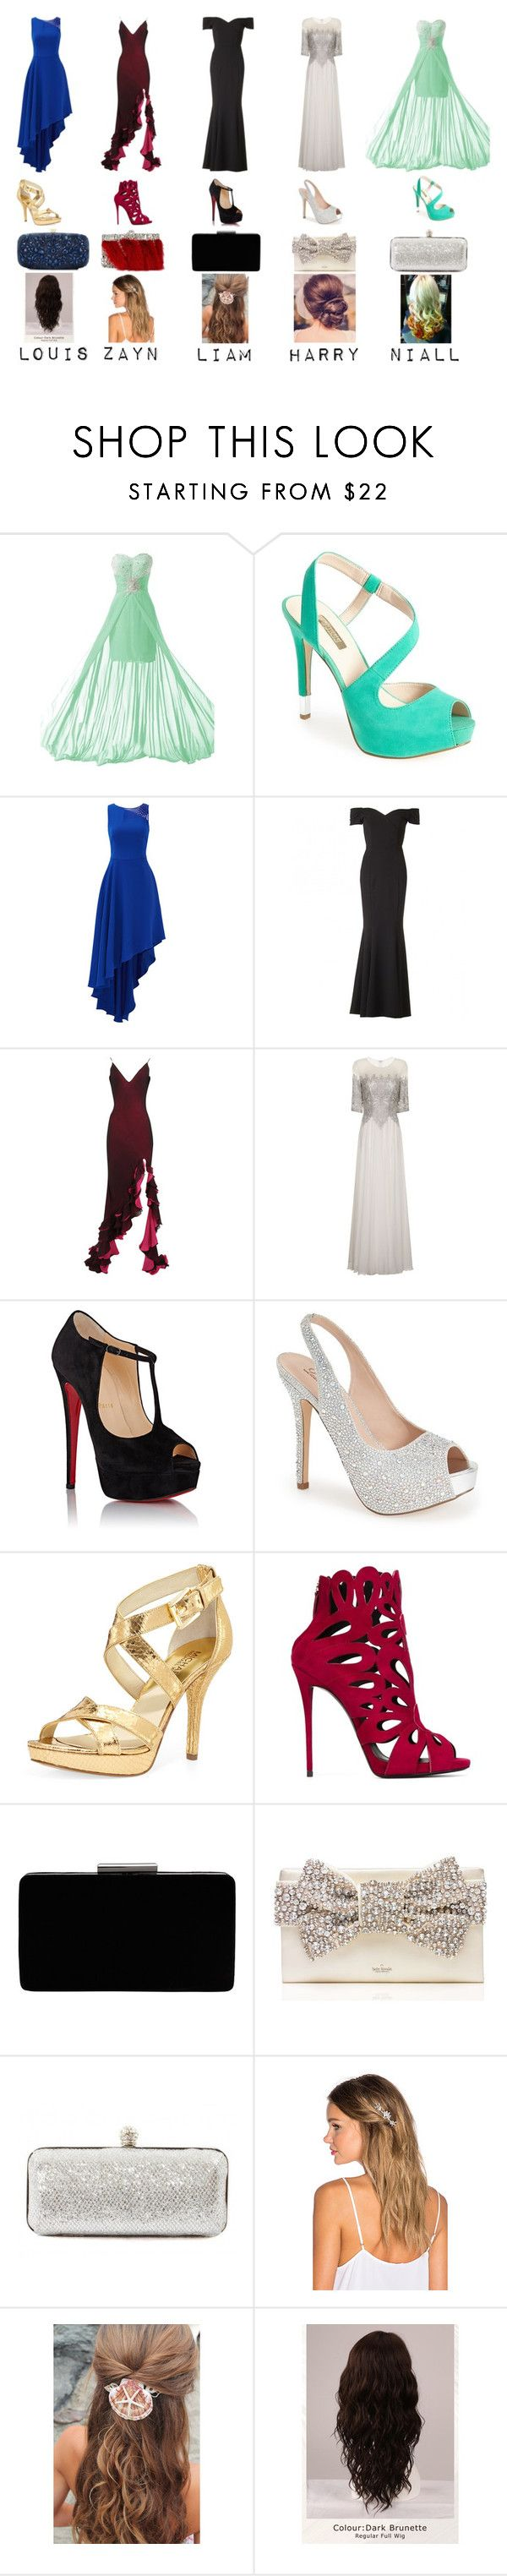 """@ the Premiere with..."" by alethea-styles-1d ❤ liked on Polyvore featuring GUESS, Halston Heritage, The Pretty Dress Company, Maria Grachvogel, Chi Chi, Christian Louboutin, Lauren Lorraine, MICHAEL Michael Kors, Giuseppe Zanotti and John Lewis"